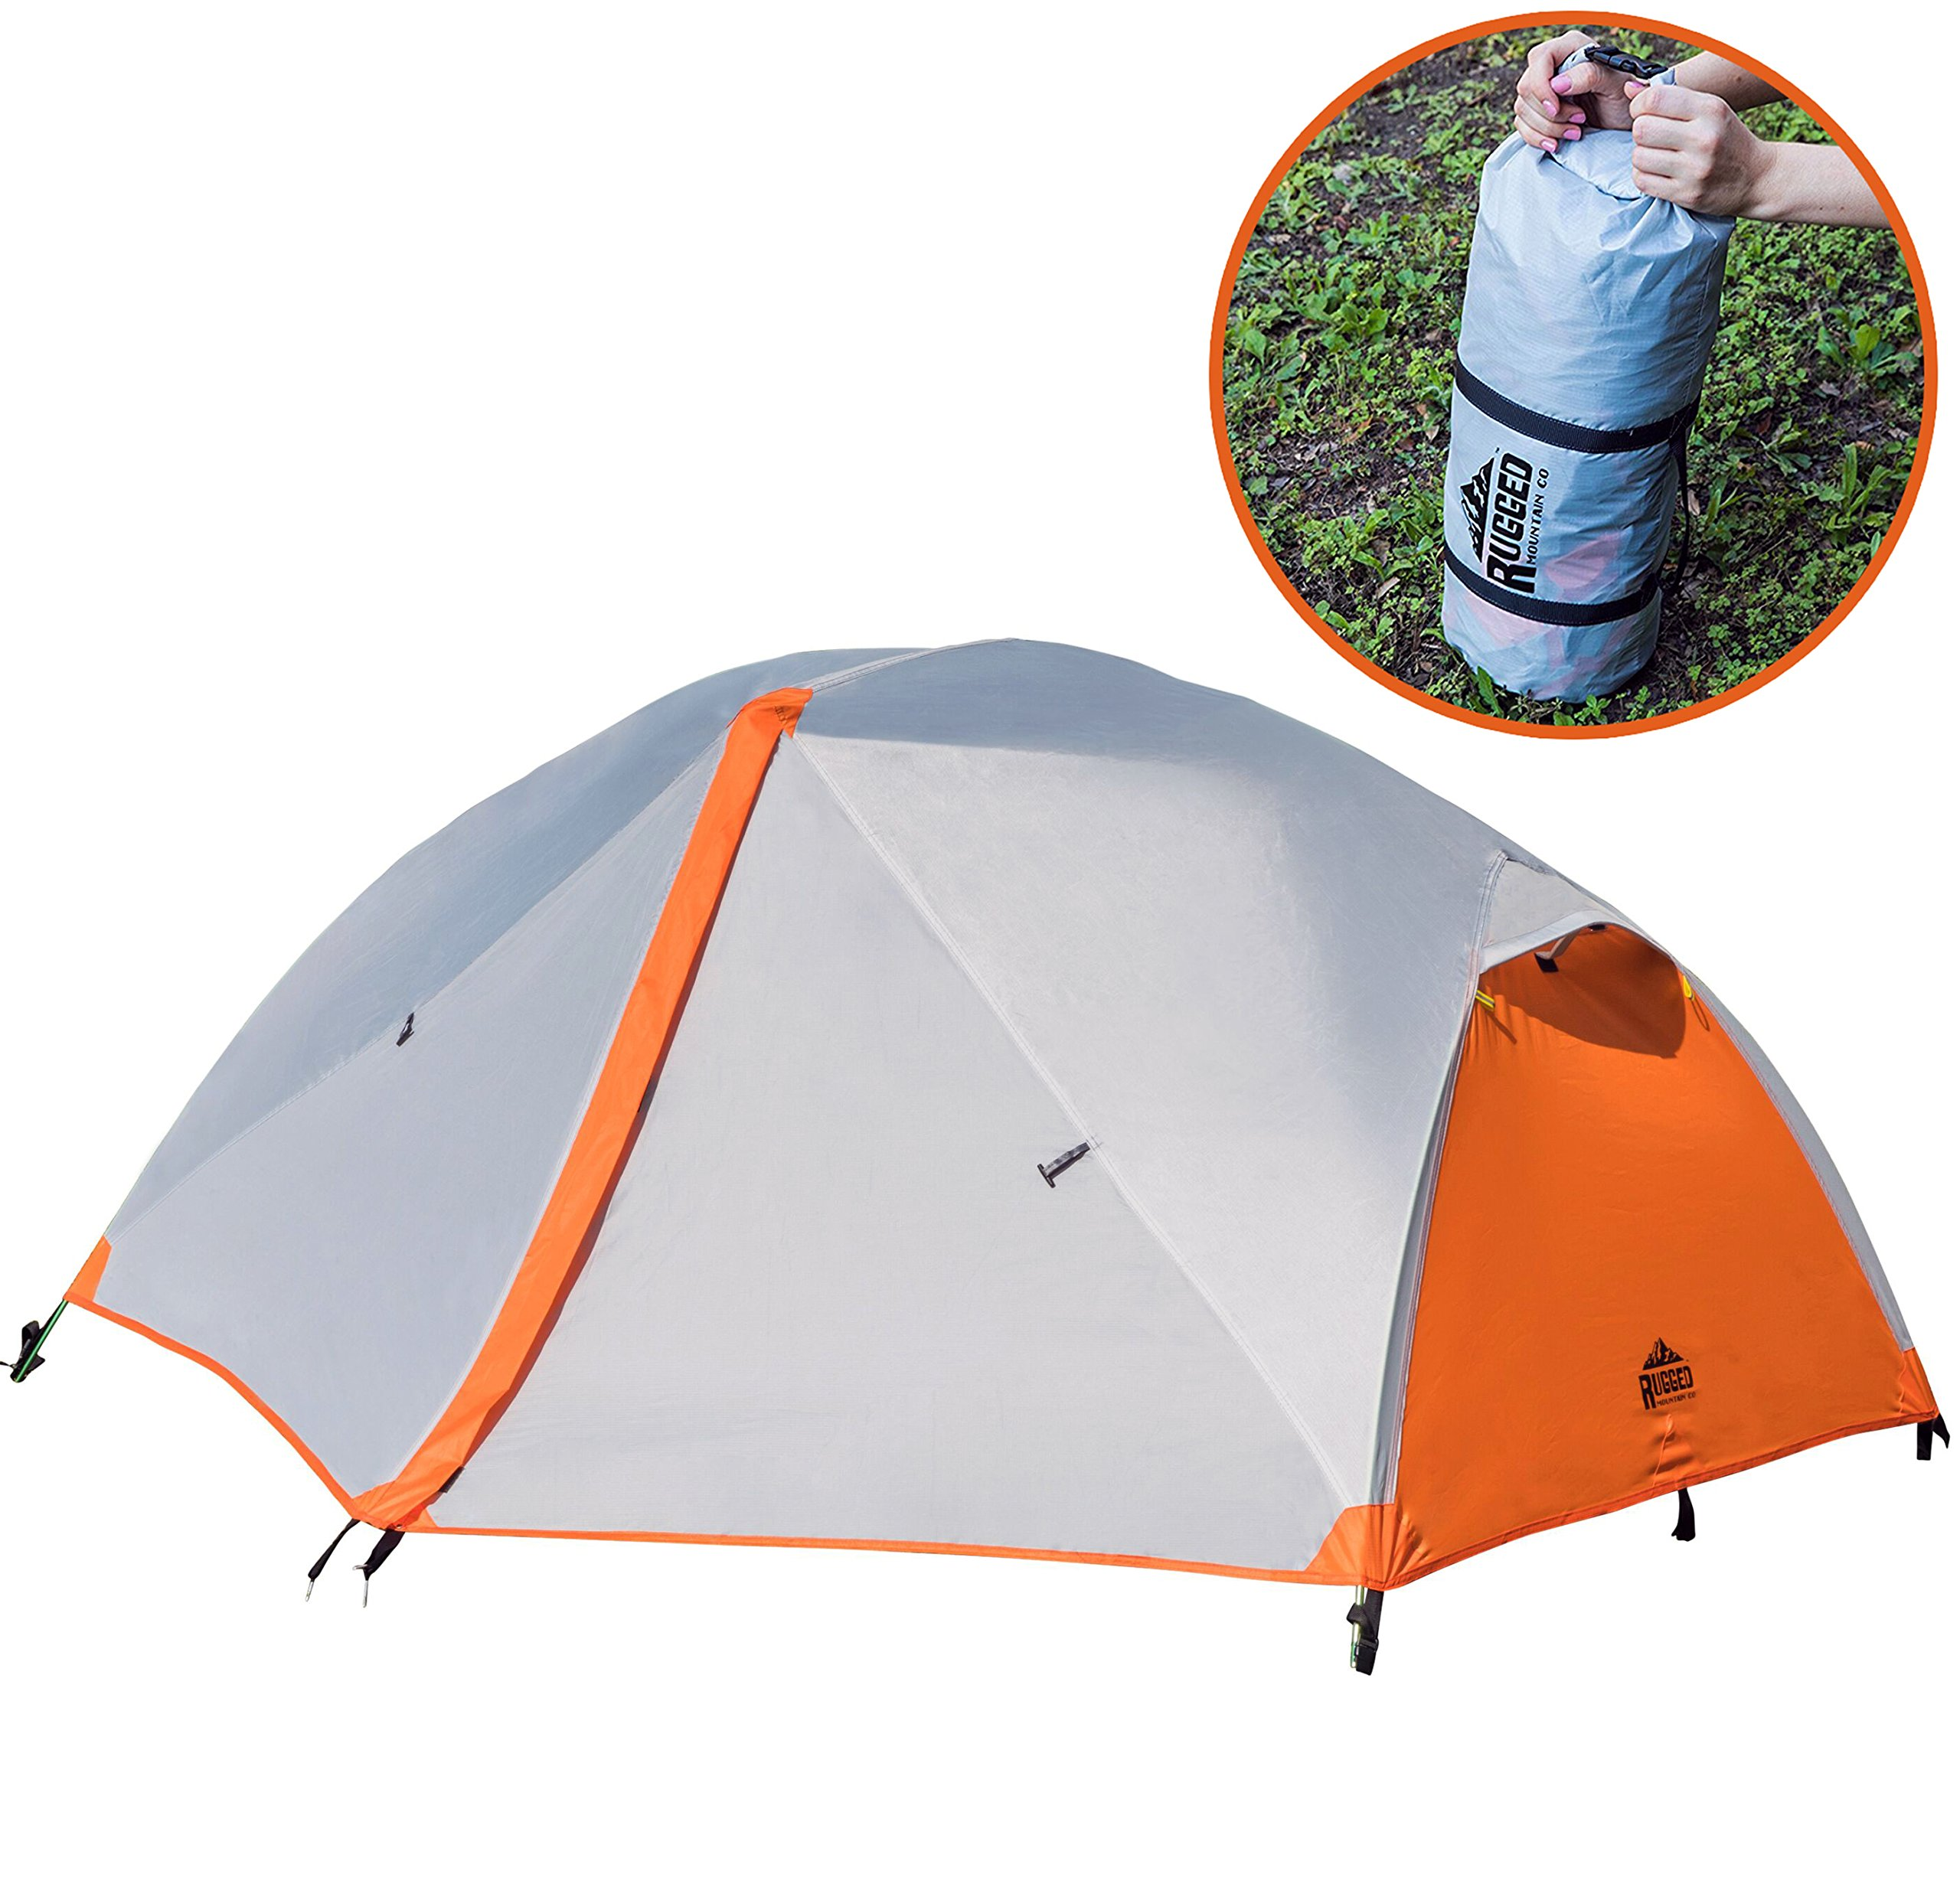 Rugged Mountain Co. 2 Person Tent for Camping - Backpacking - Hiking - Best 3 Season Outdoor Lightweight Sports Waterproof Dome Shelter - Compact Pop Up with Portable Carry Bag